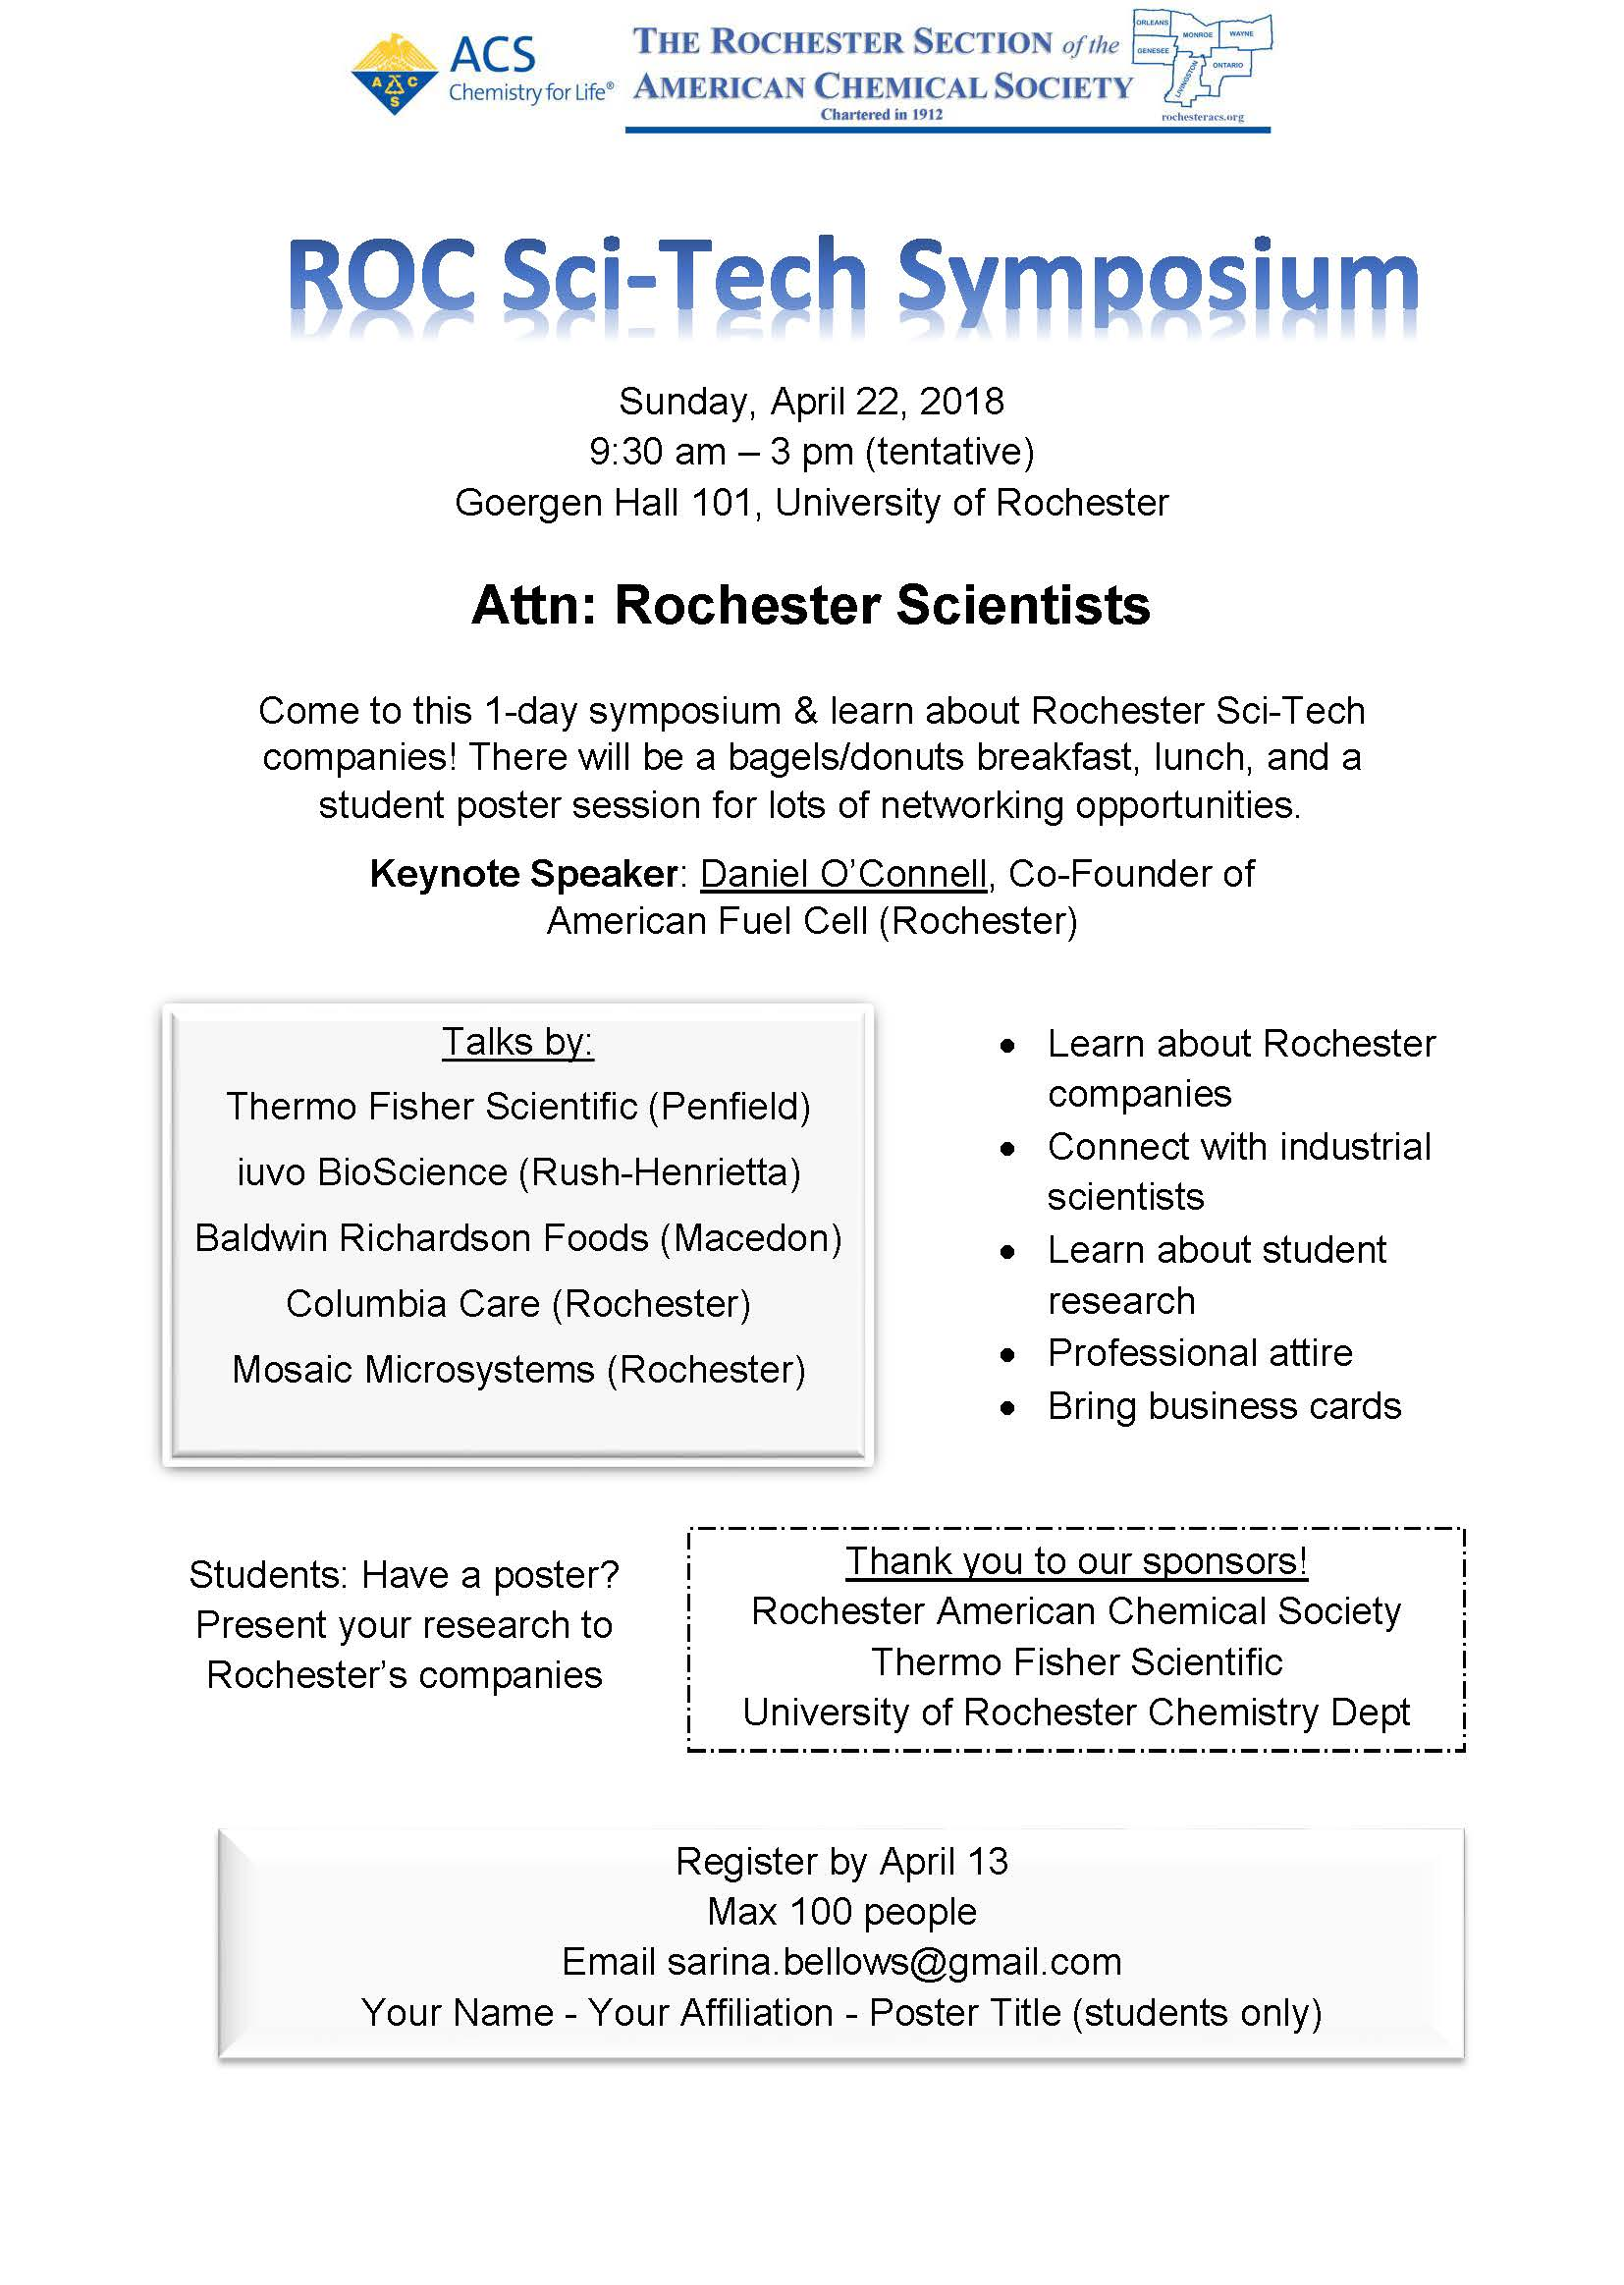 ROC Sci-Tech Symposium